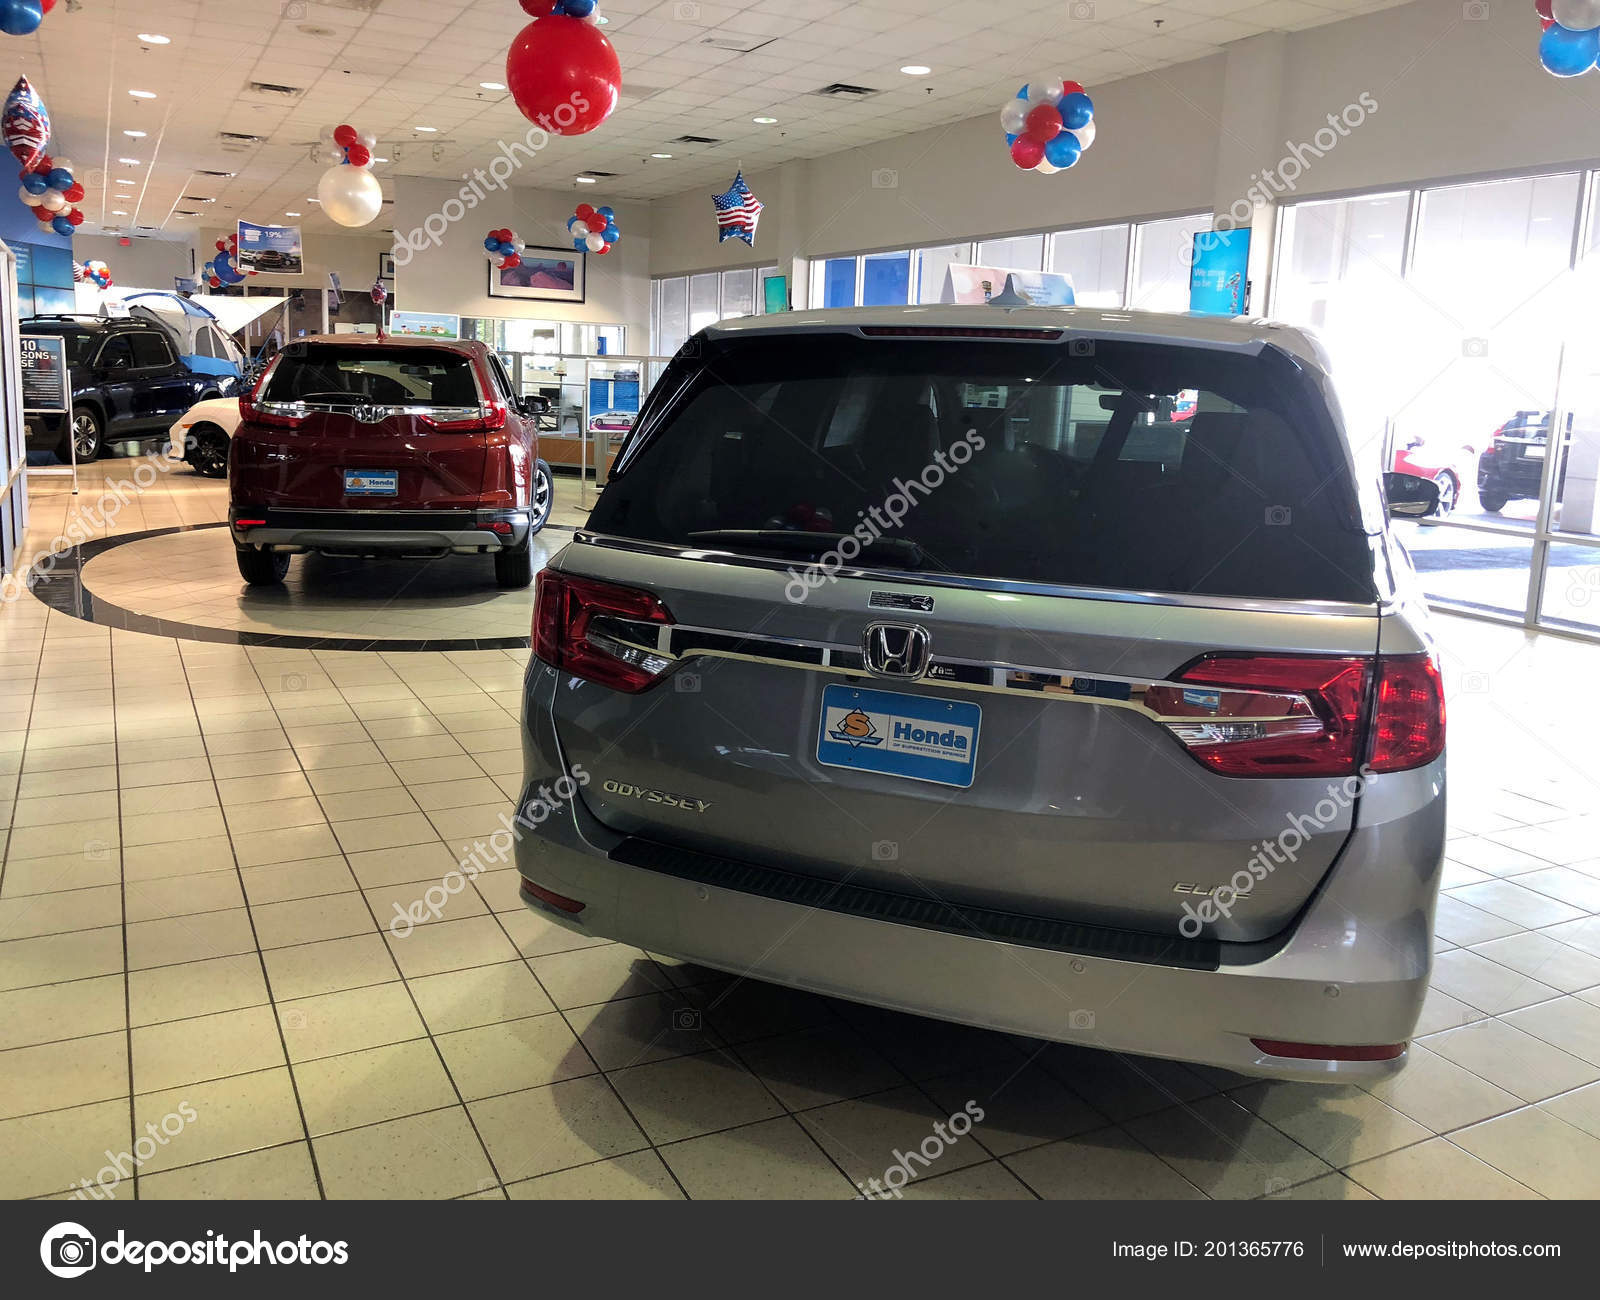 Honda Dealership Az >> Honda Dealership Cars Customers Purchase Dealership Located